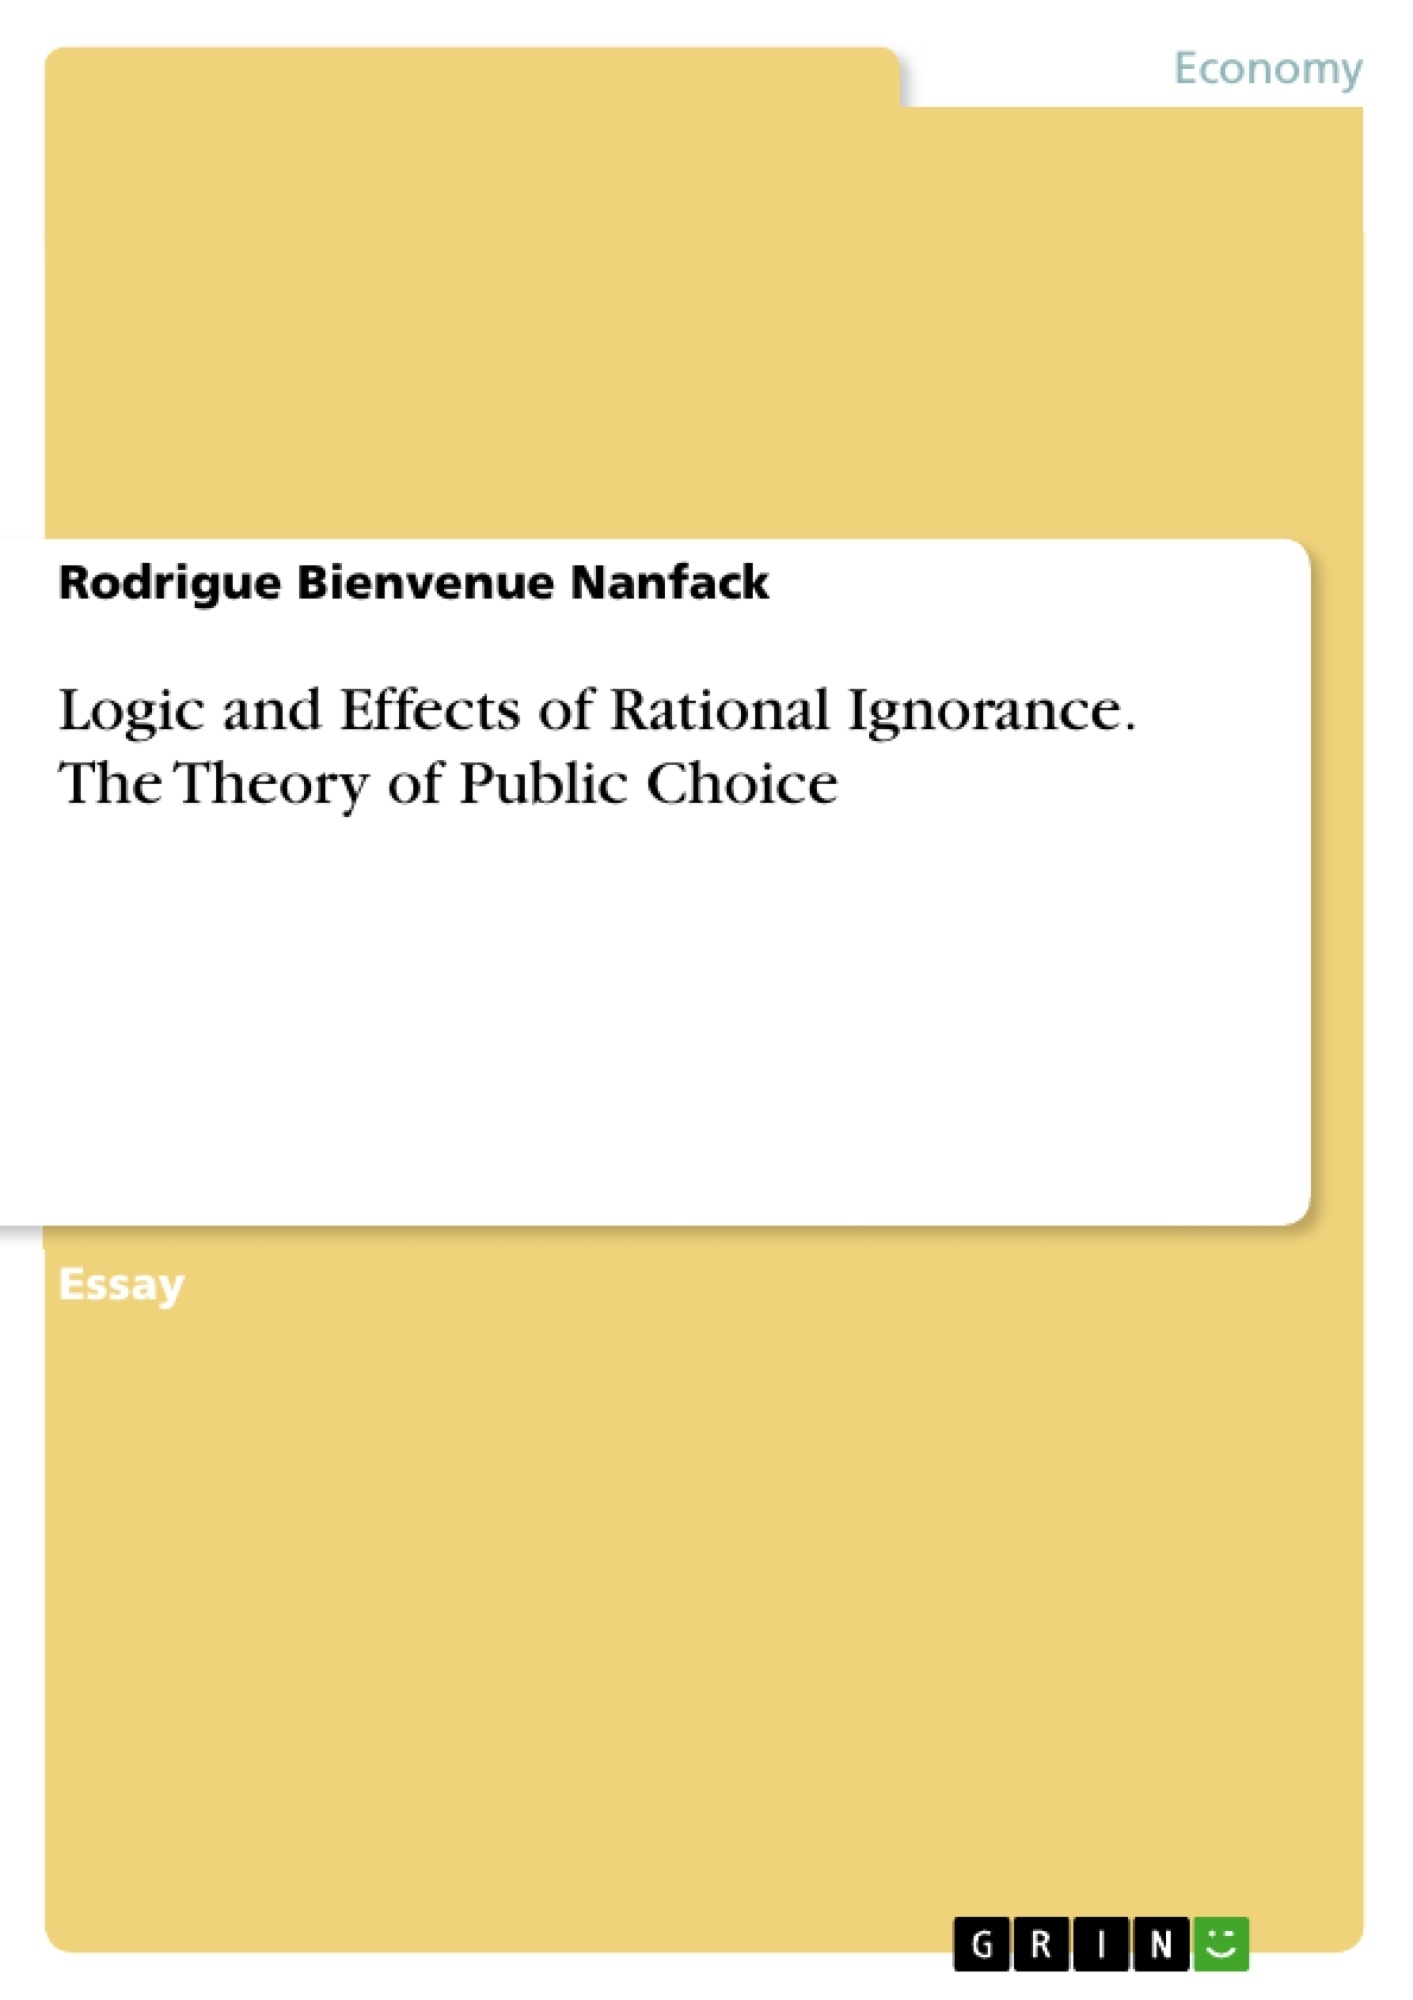 Title: Logic and Effects of Rational Ignorance. The Theory of Public Choice